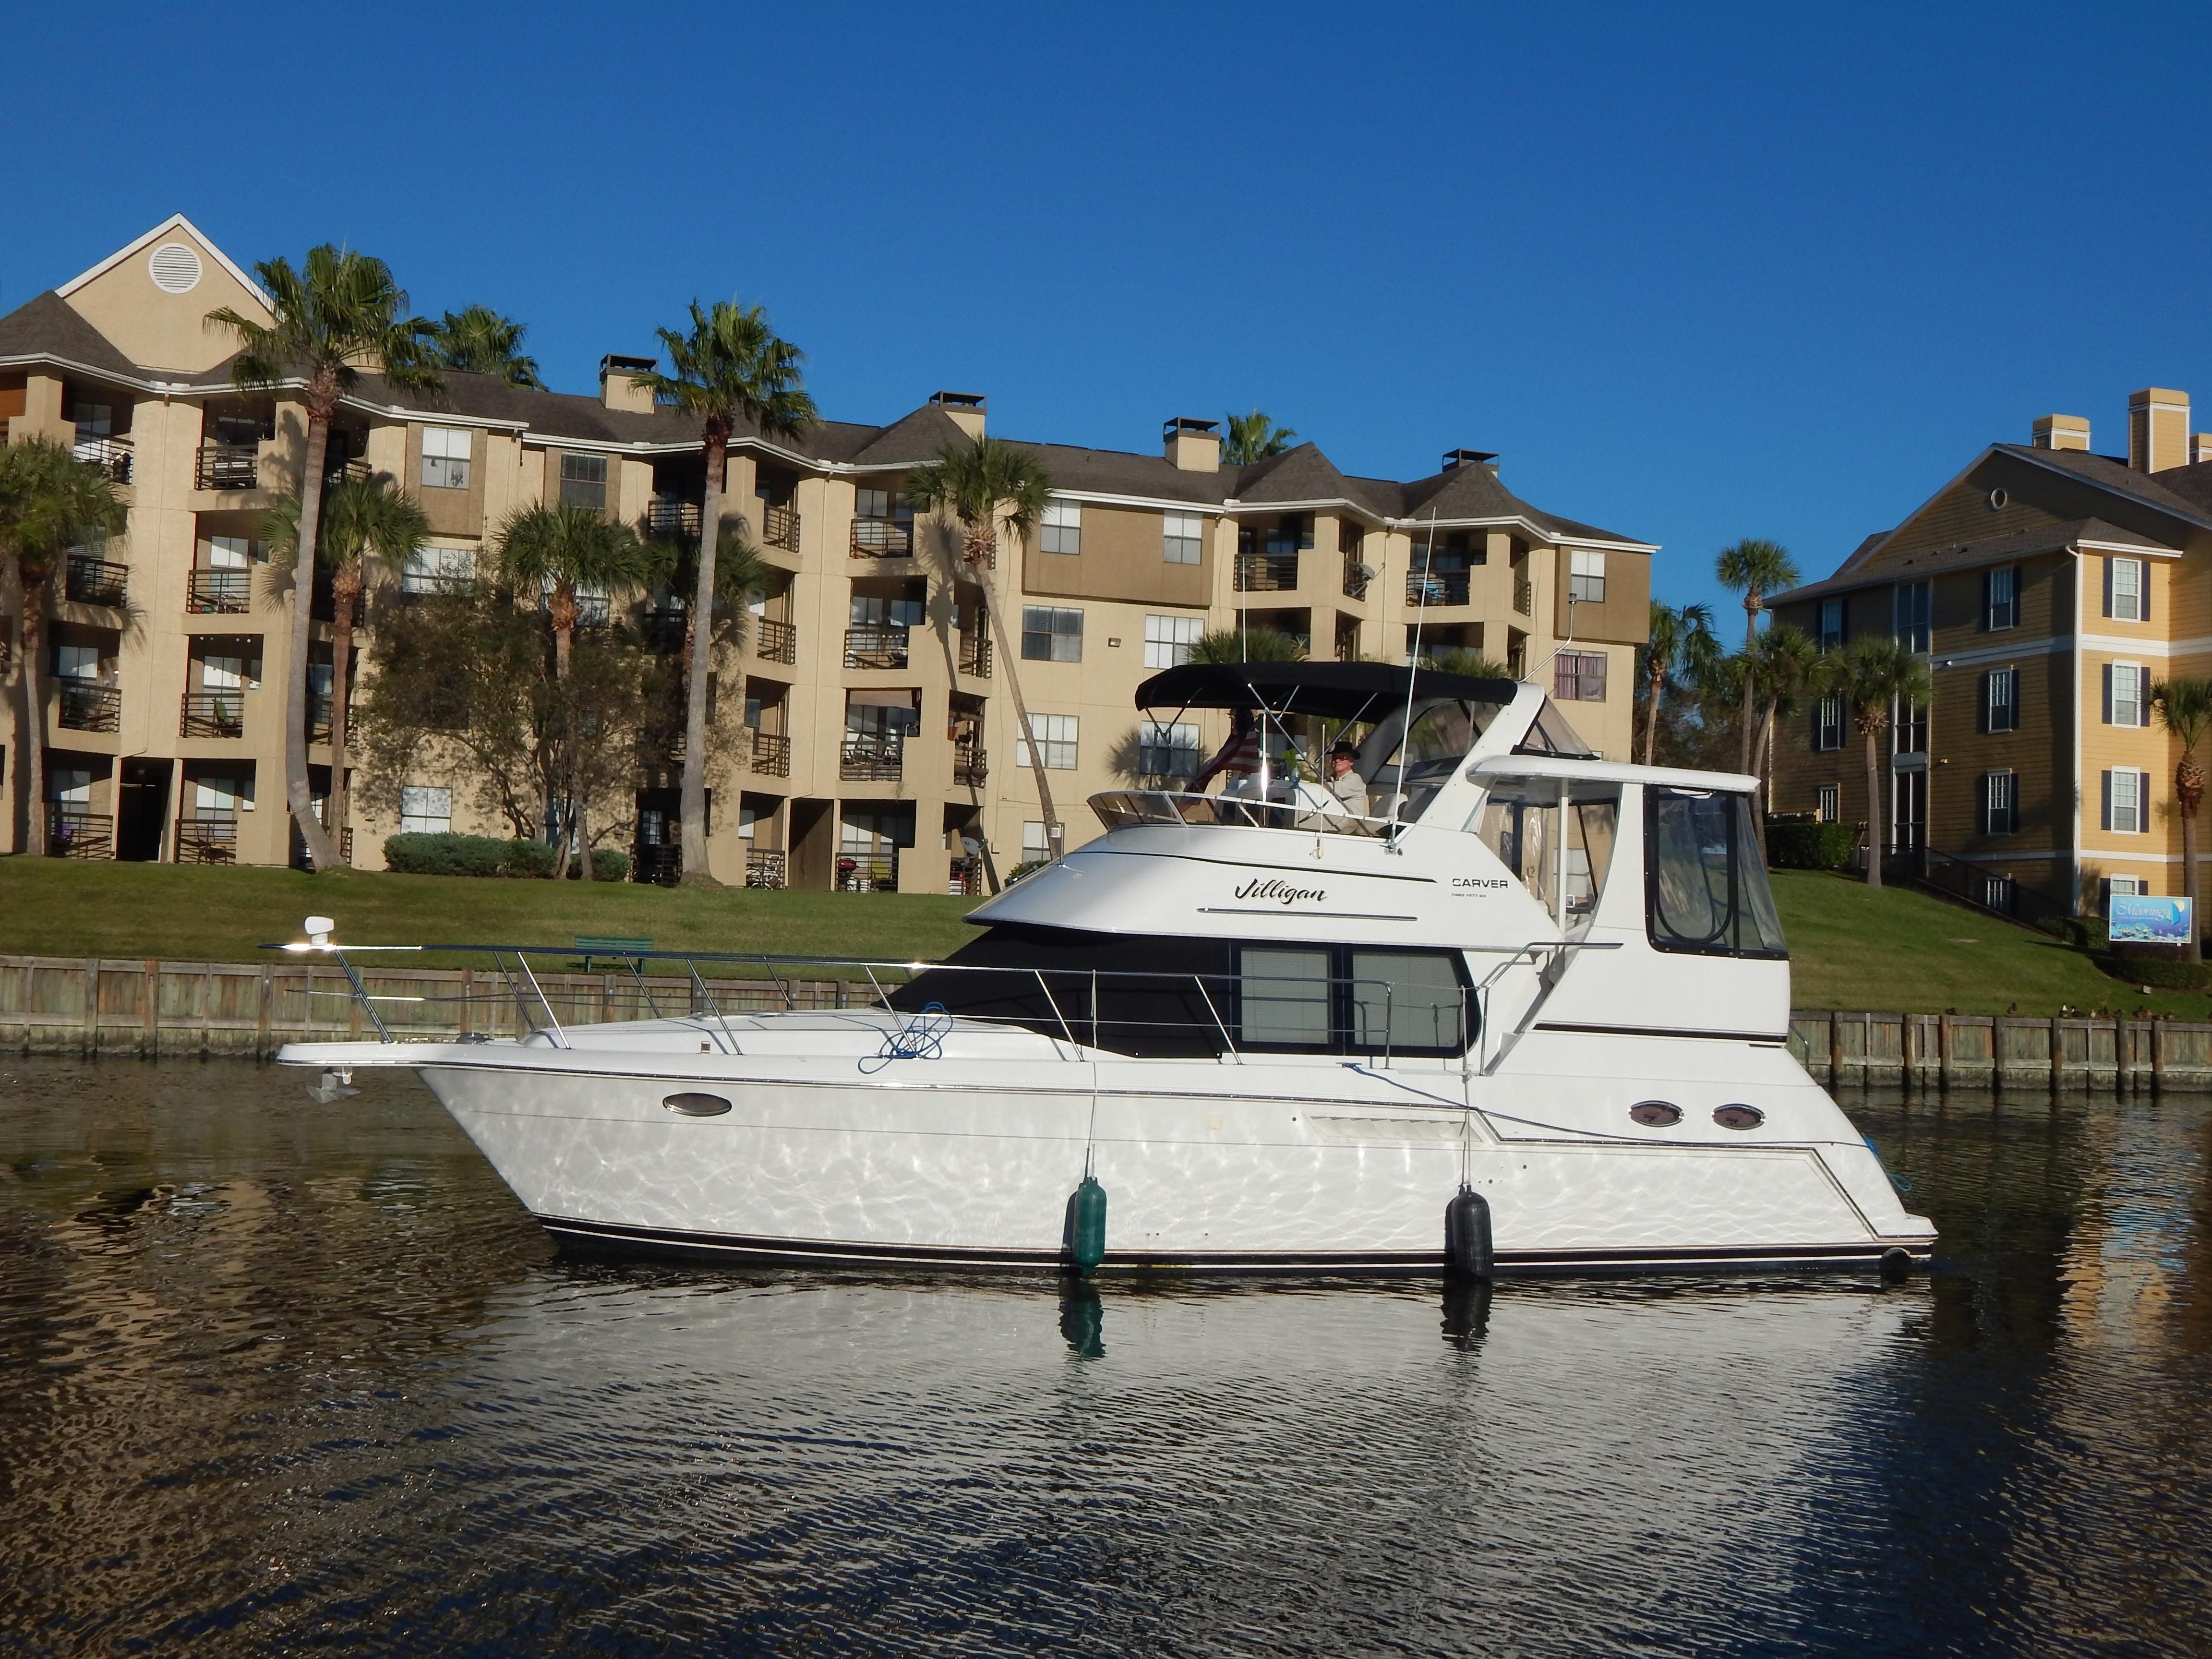 1999 carver 356 aft cabin motor yacht power new and used boats for Carver aft cabin motor yacht